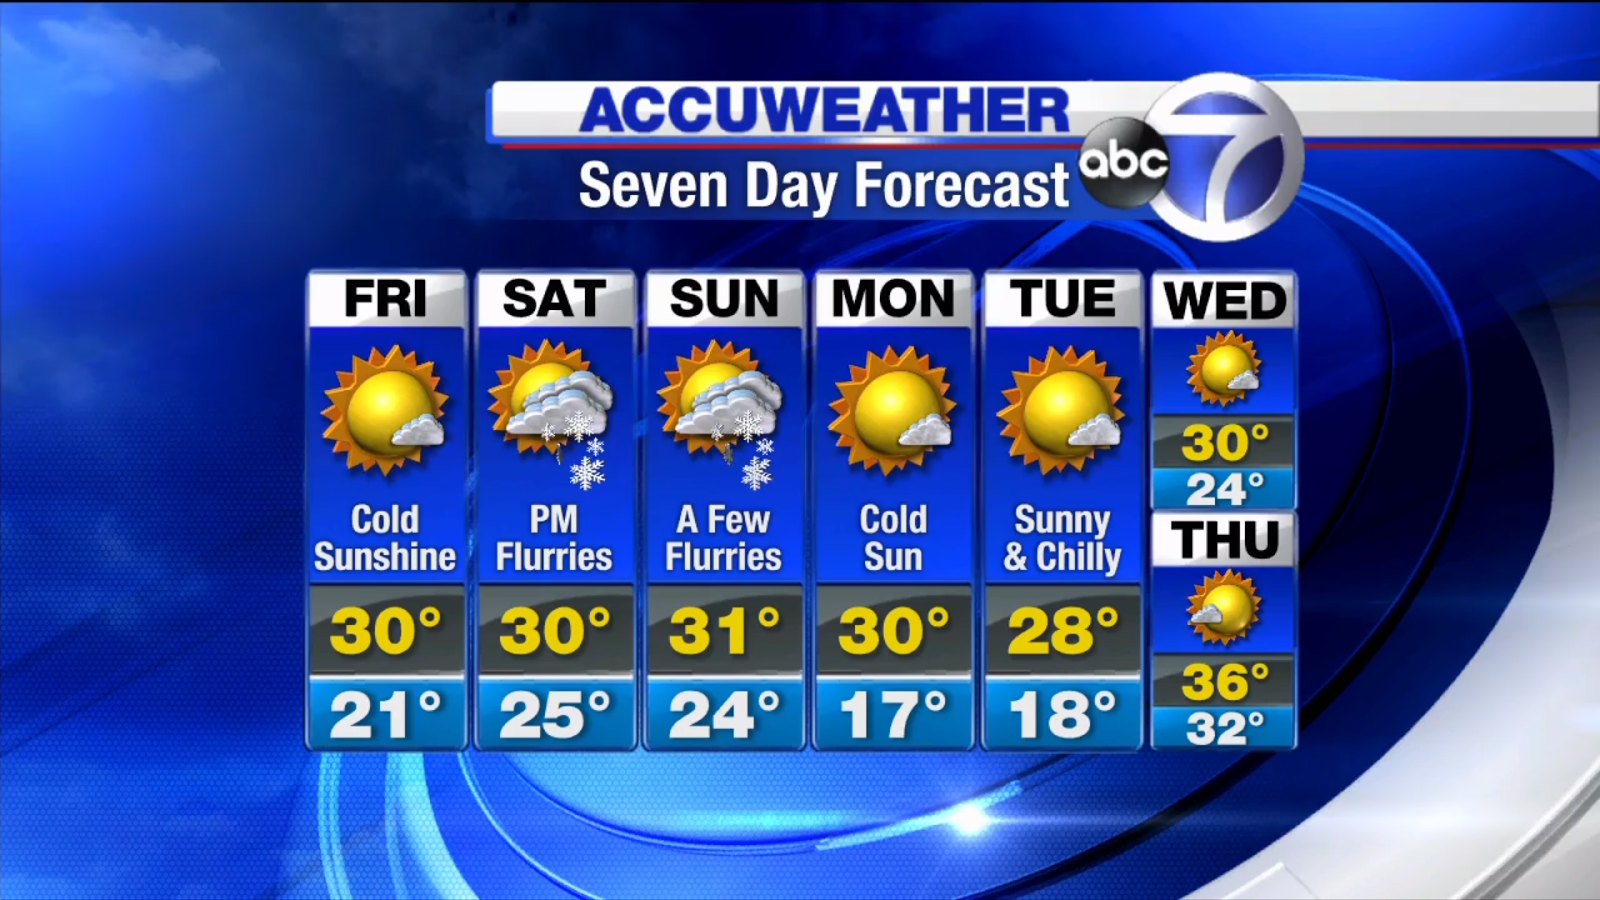 Stn New York 7 Day Accuweather Forecast